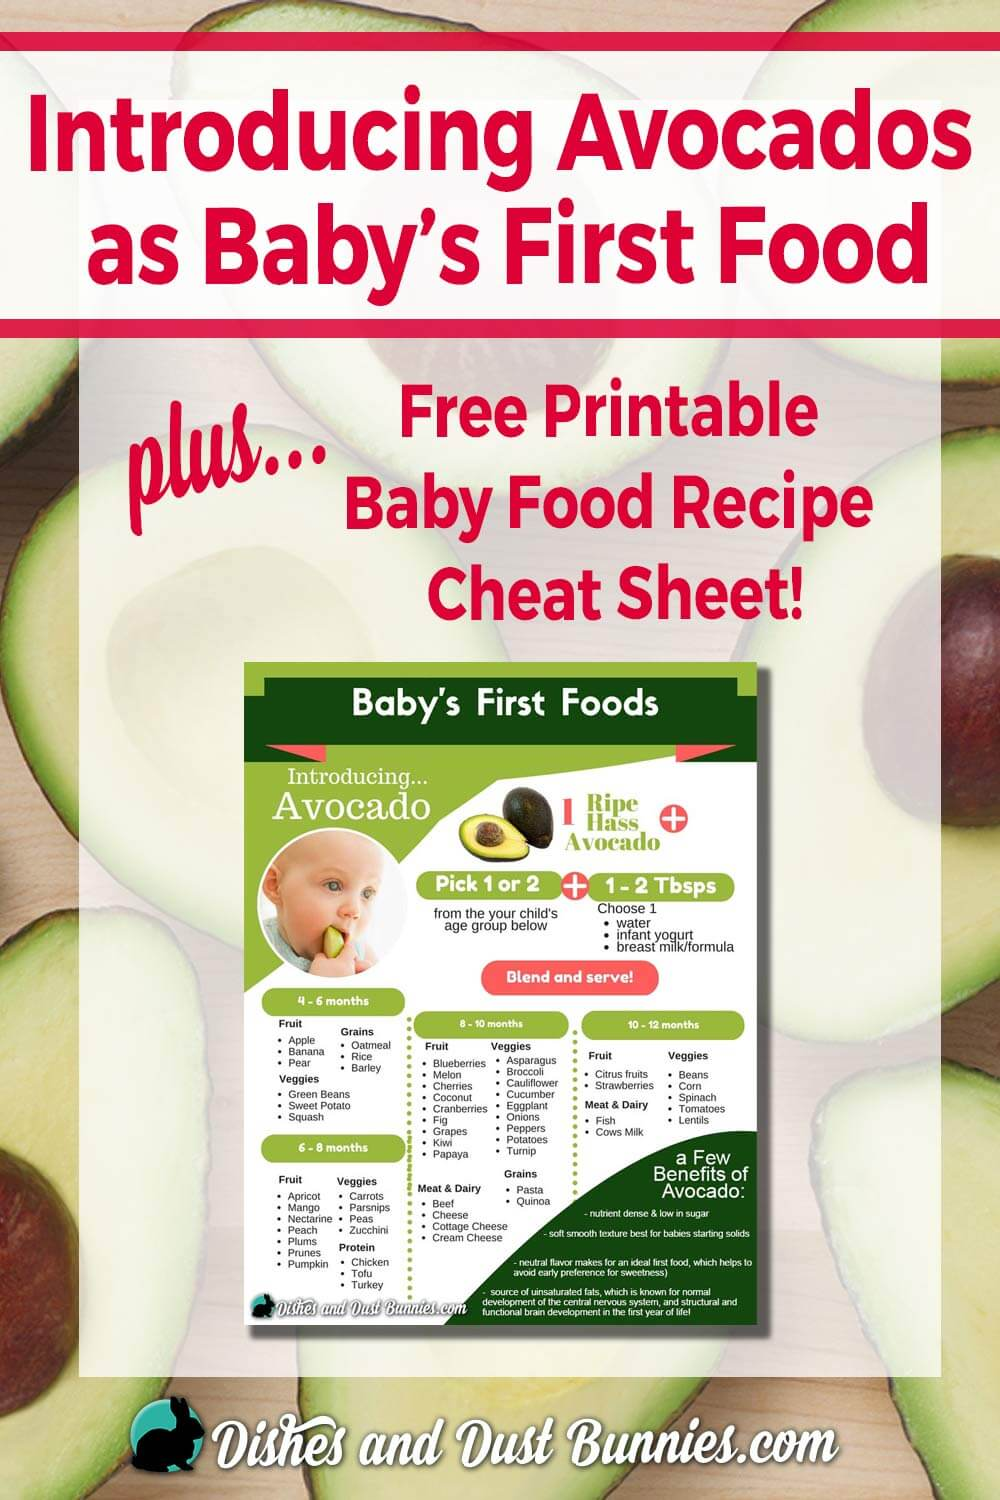 Introducing Avocados as Baby's First Food - Plus Free Printable Baby Food Recipe Cheat Sheet from dishesanddustbunnies.com